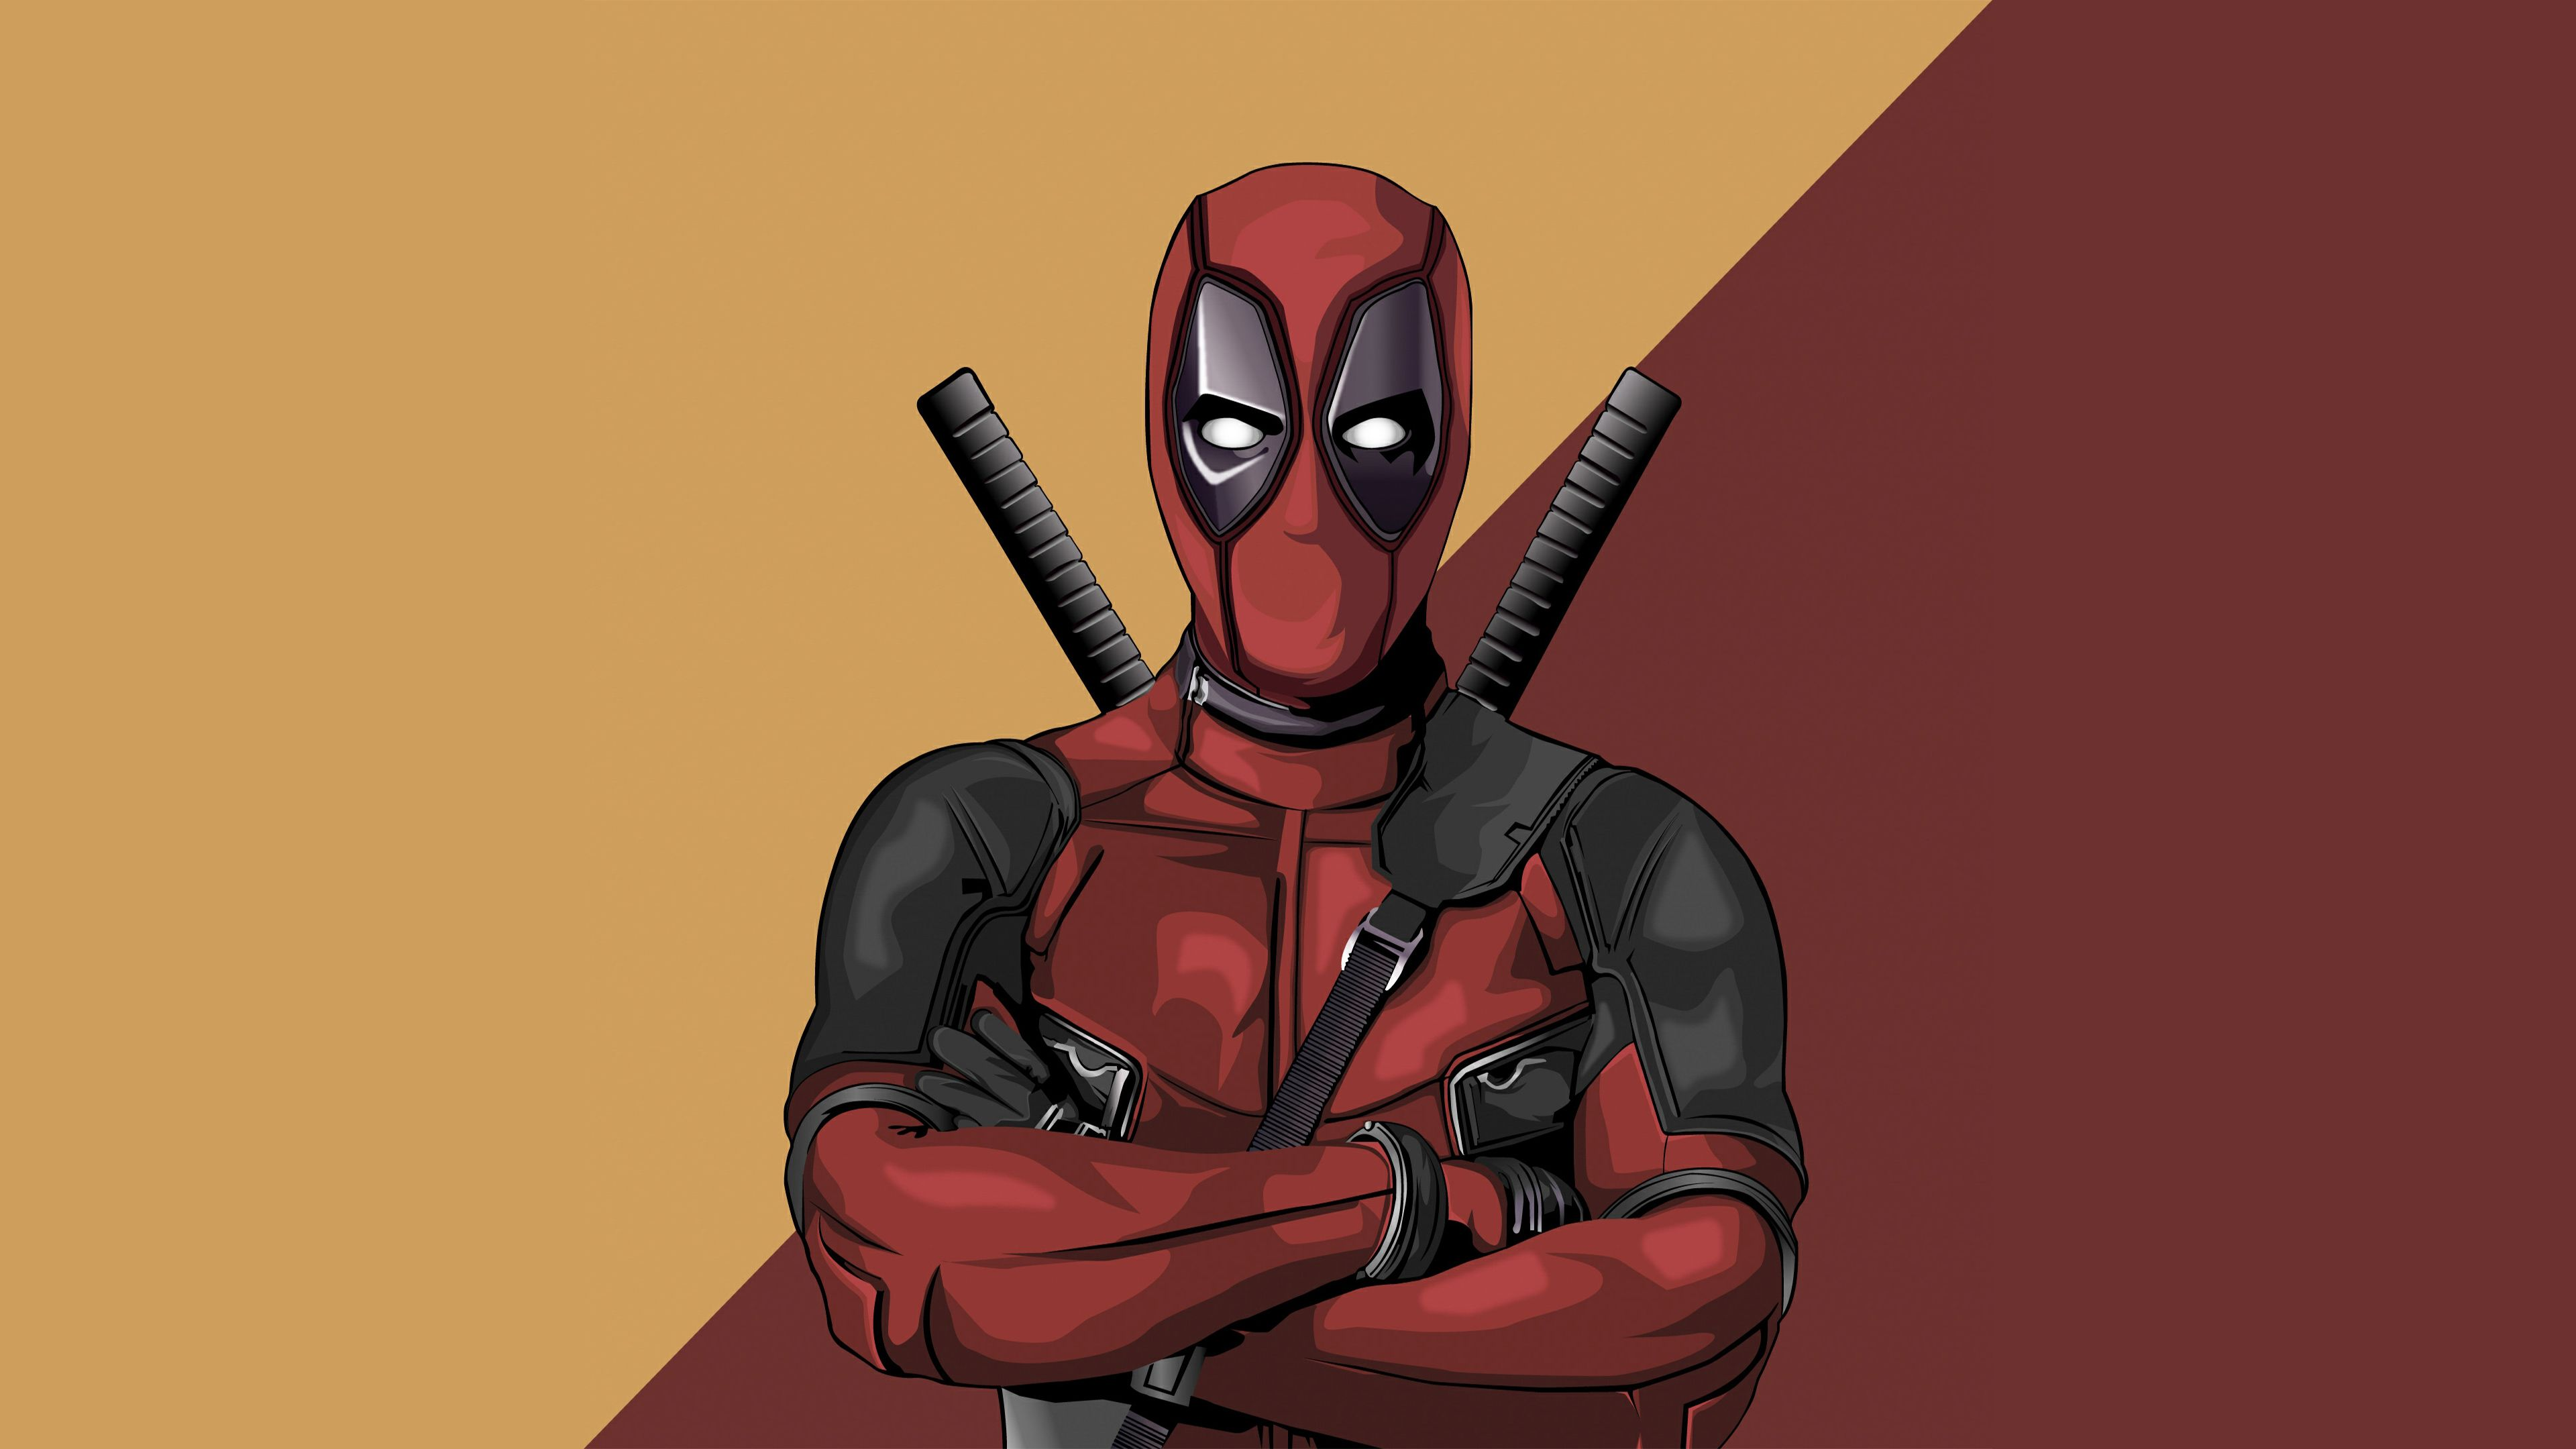 Deadpool Vector Artwork 4k Vector Wallpapers Superheroes Wallpapers Hd Wallpapers Digital Art W Vector Artwork Deadpool Wallpaper Desktop Deadpool Wallpaper